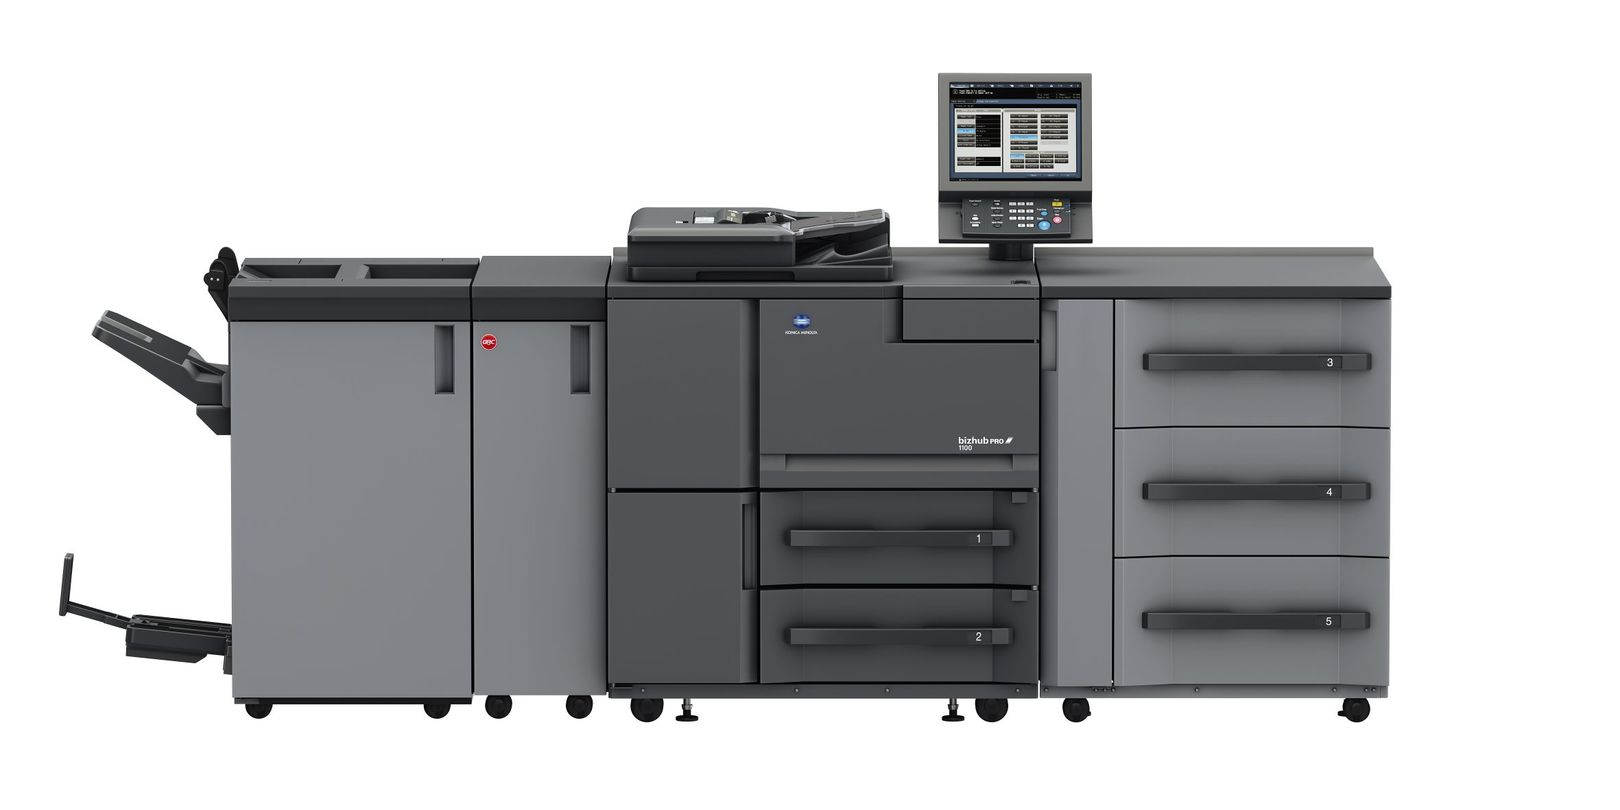 Konica Minolta Bizhub Pro 1100 printer available ot lease or purchase.